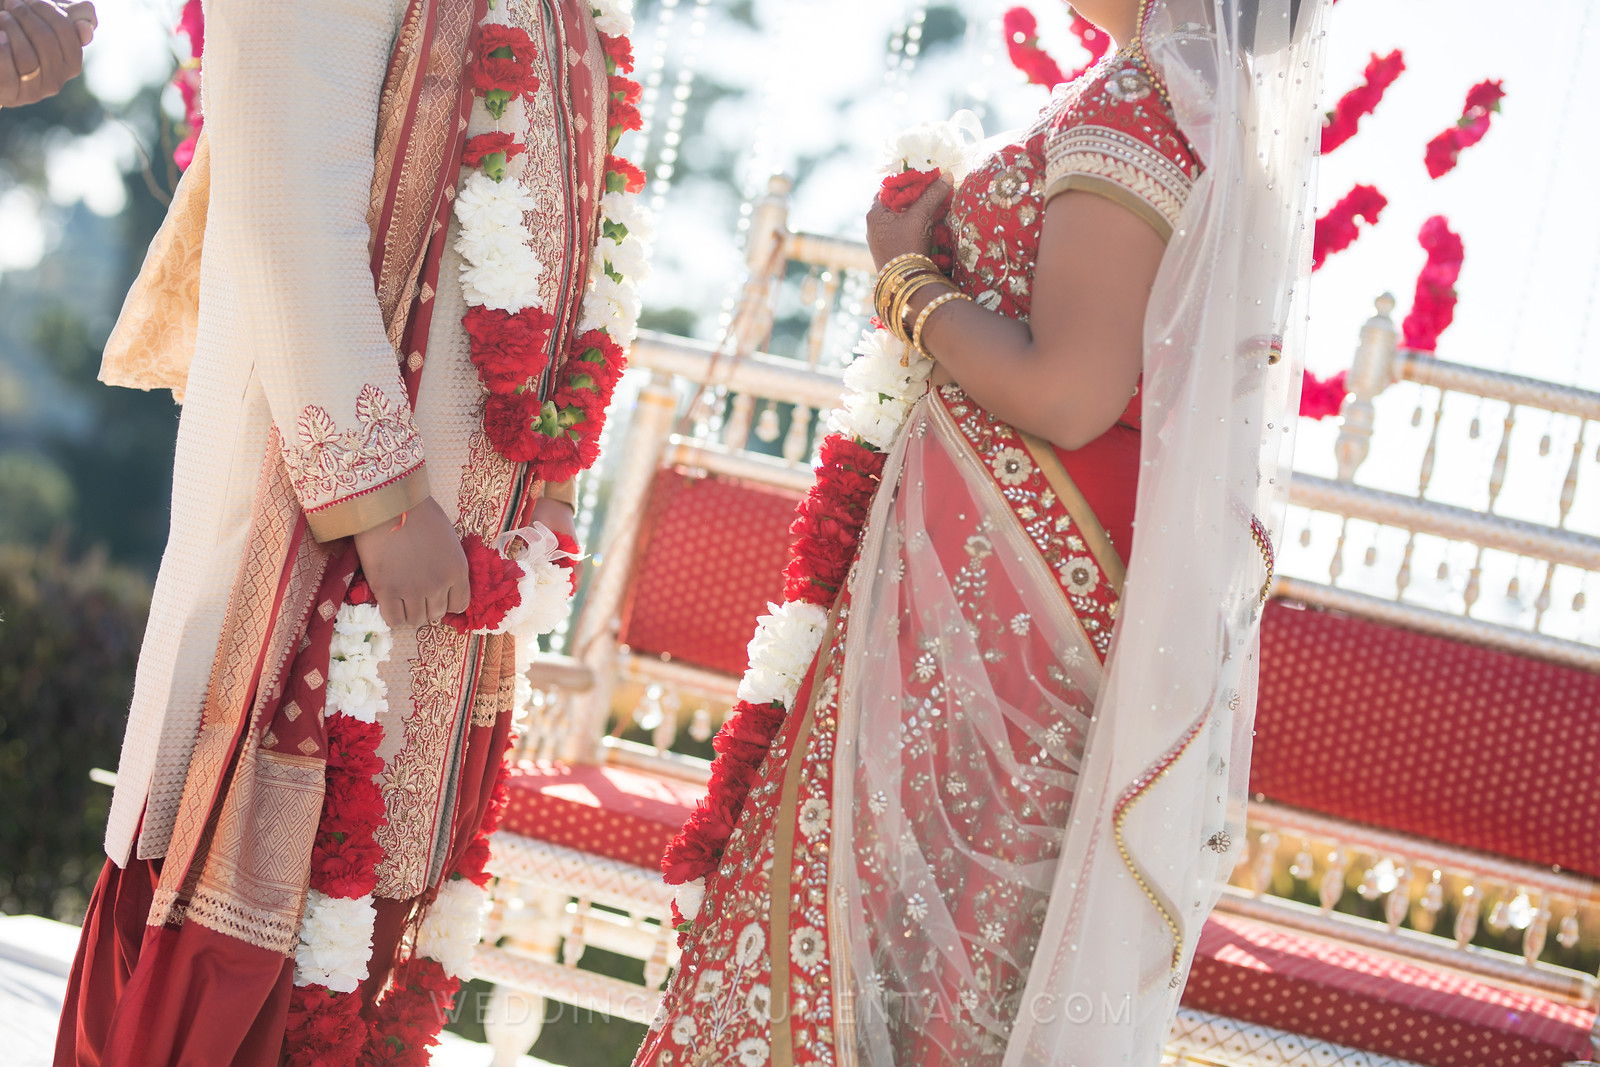 Roshni_Rahul_Wedding-937-X3.jpg